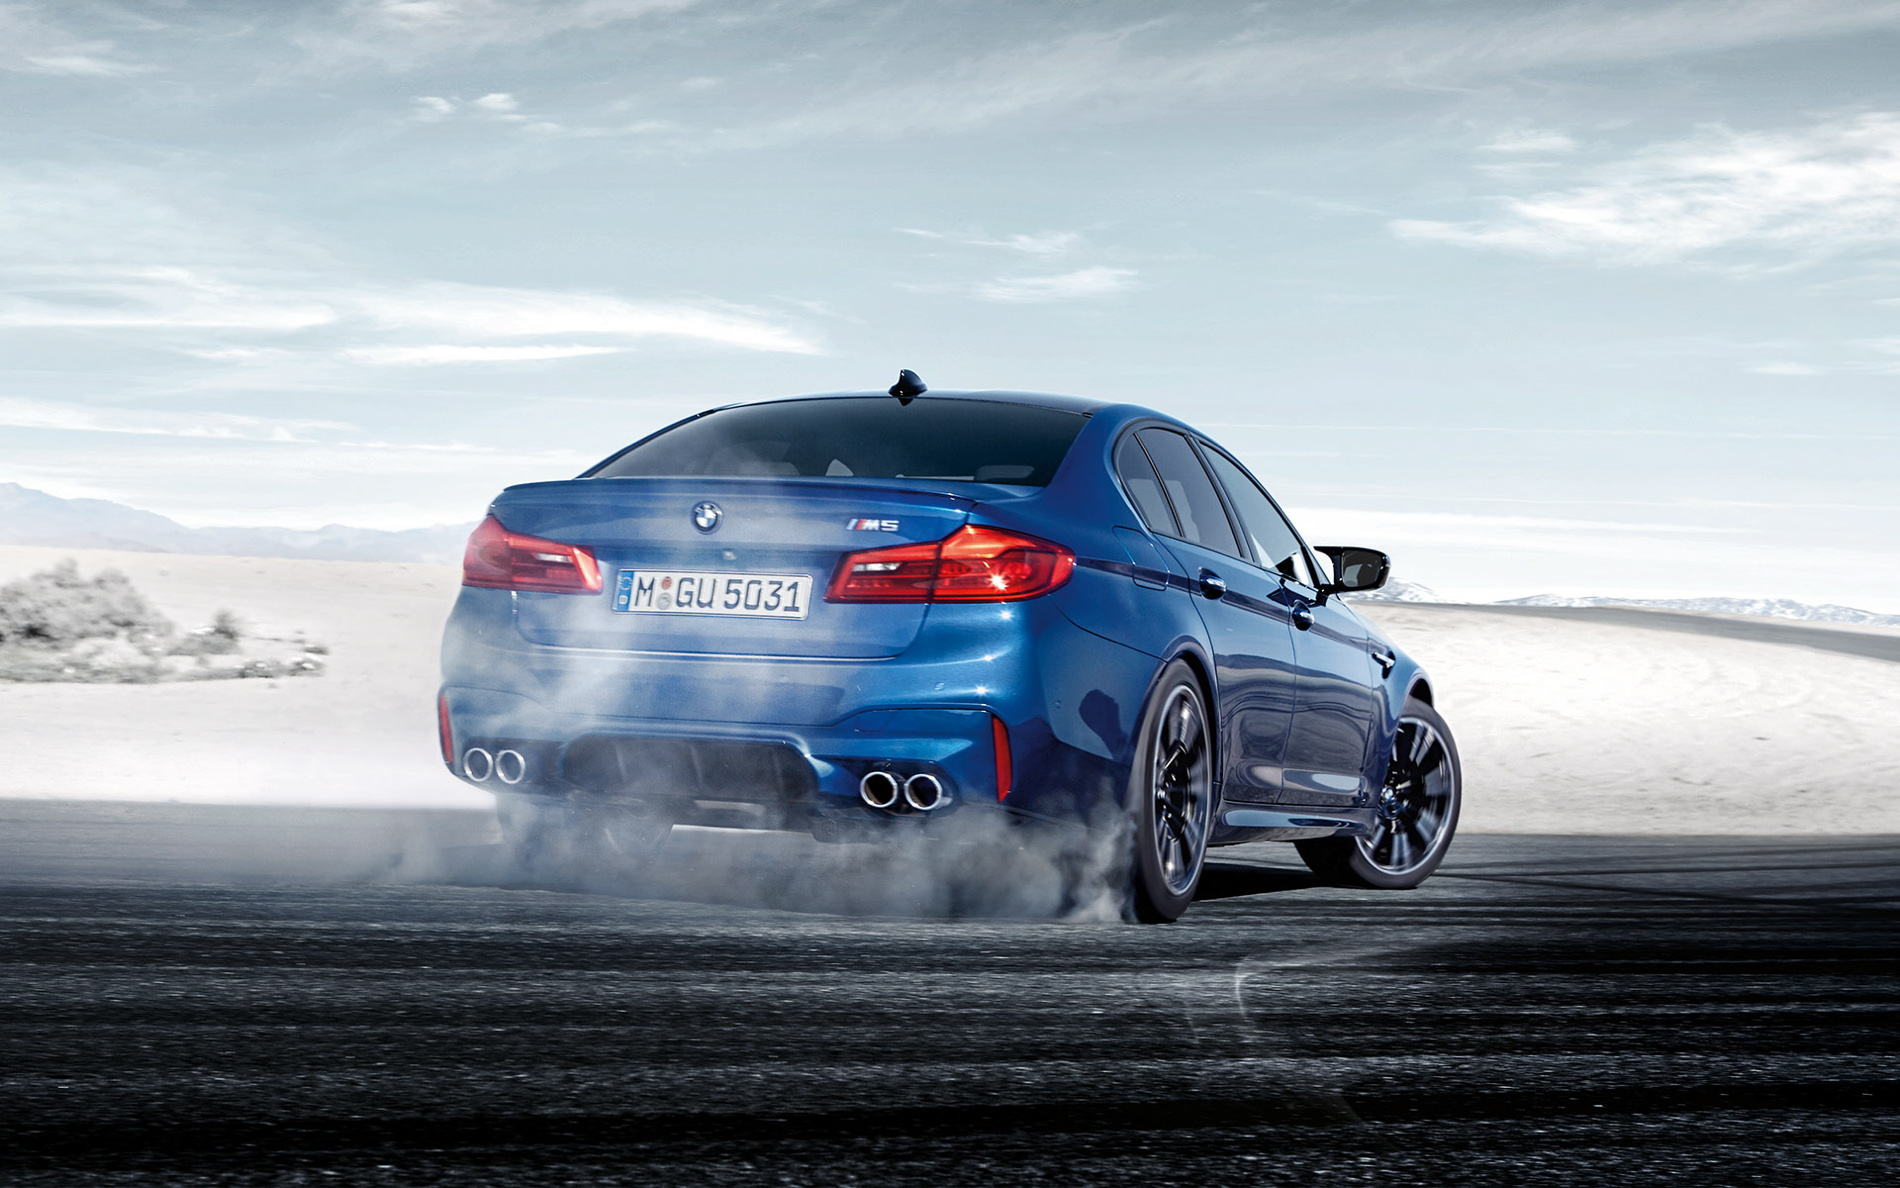 Fastest Car In The World 2020 >> Download wallpapers of the new 2018 BMW F90 M5